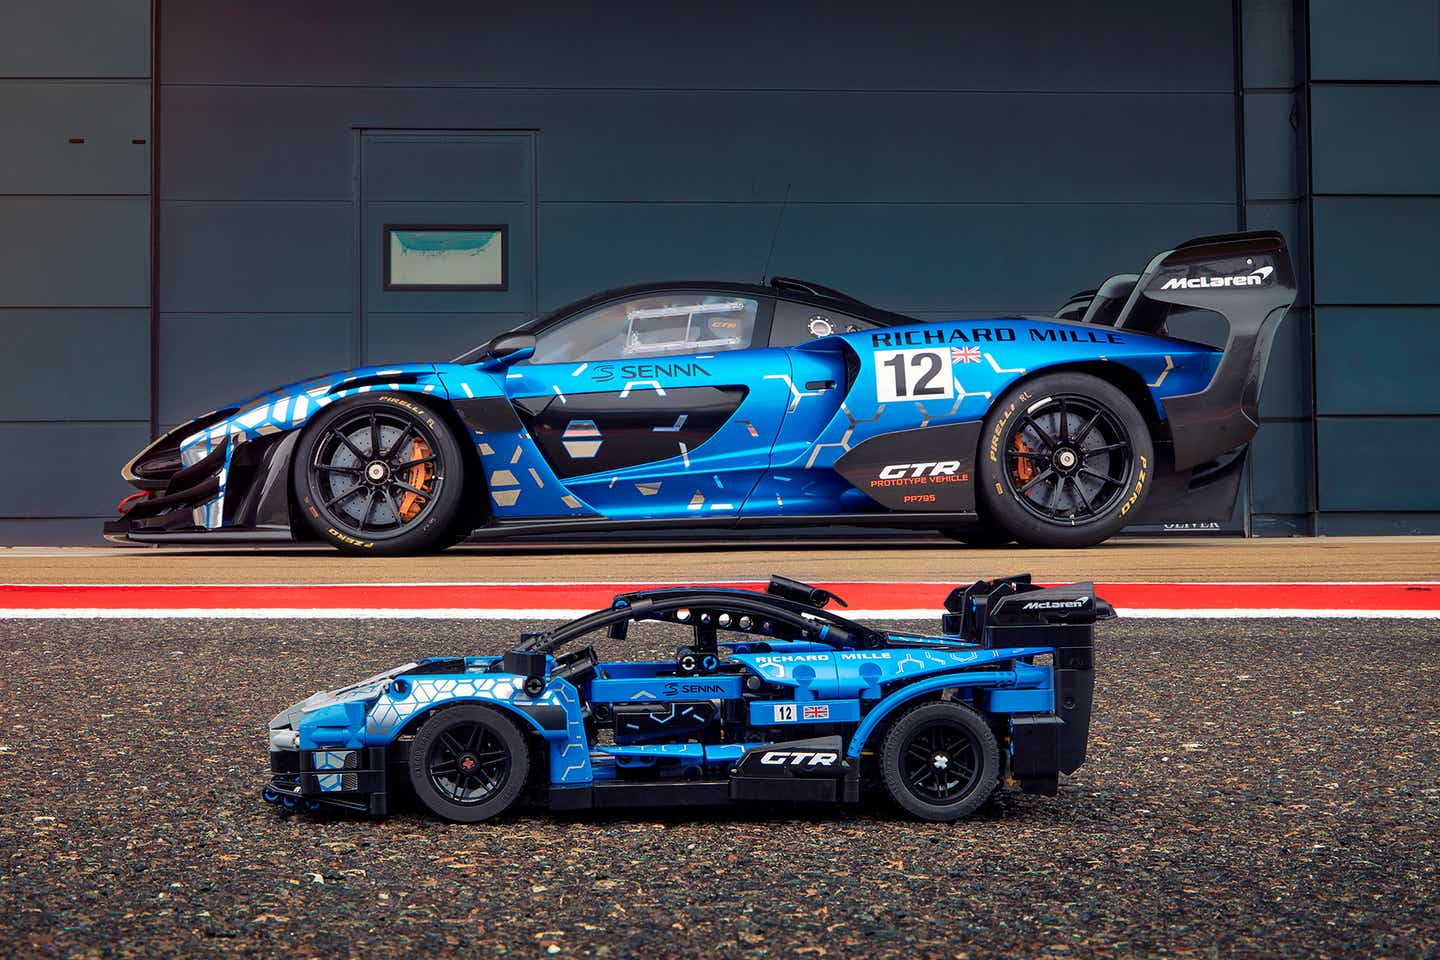 LEGO Technic McLaren Senna GTR Set Revealed